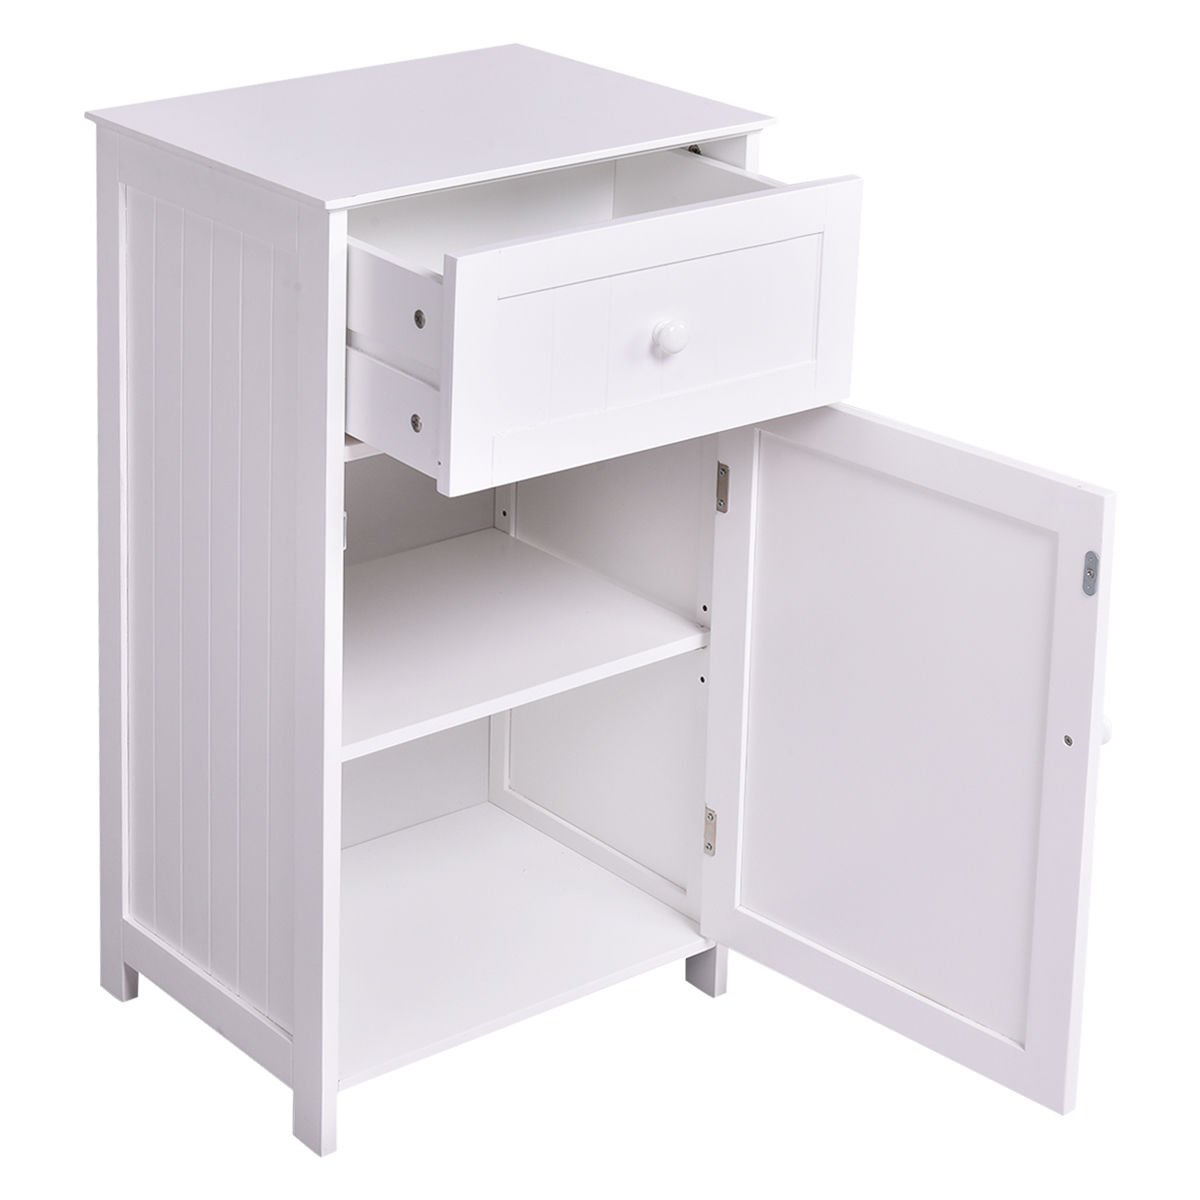 Costway Floor Storage Cabinet Organizer Cupboard Drawer ...